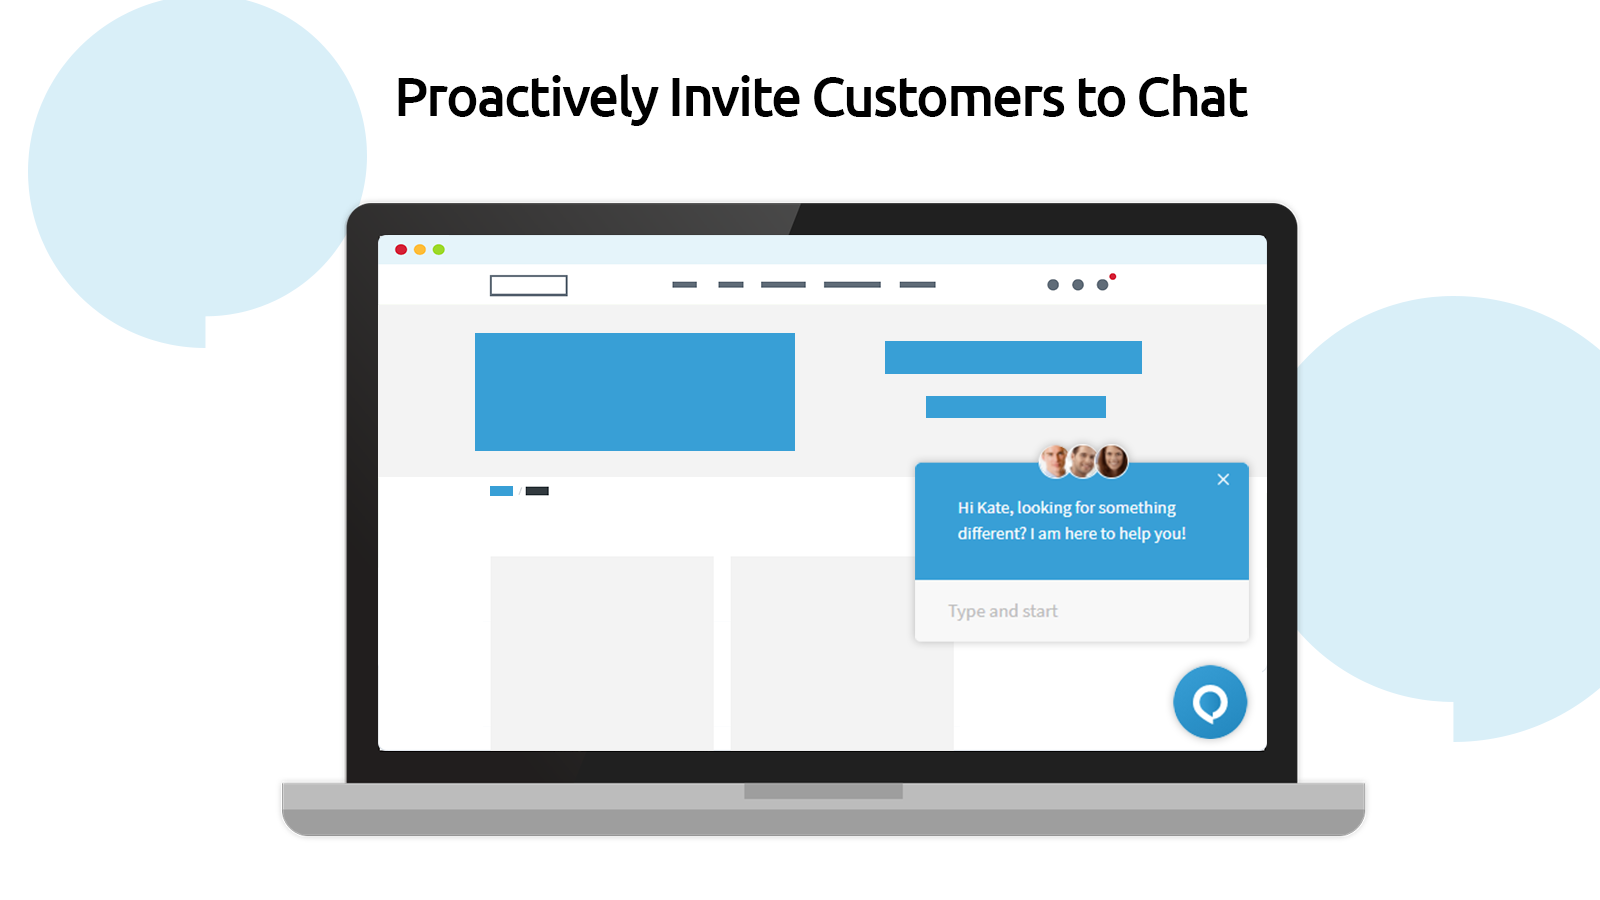 Proactively Invite Customers to Chat